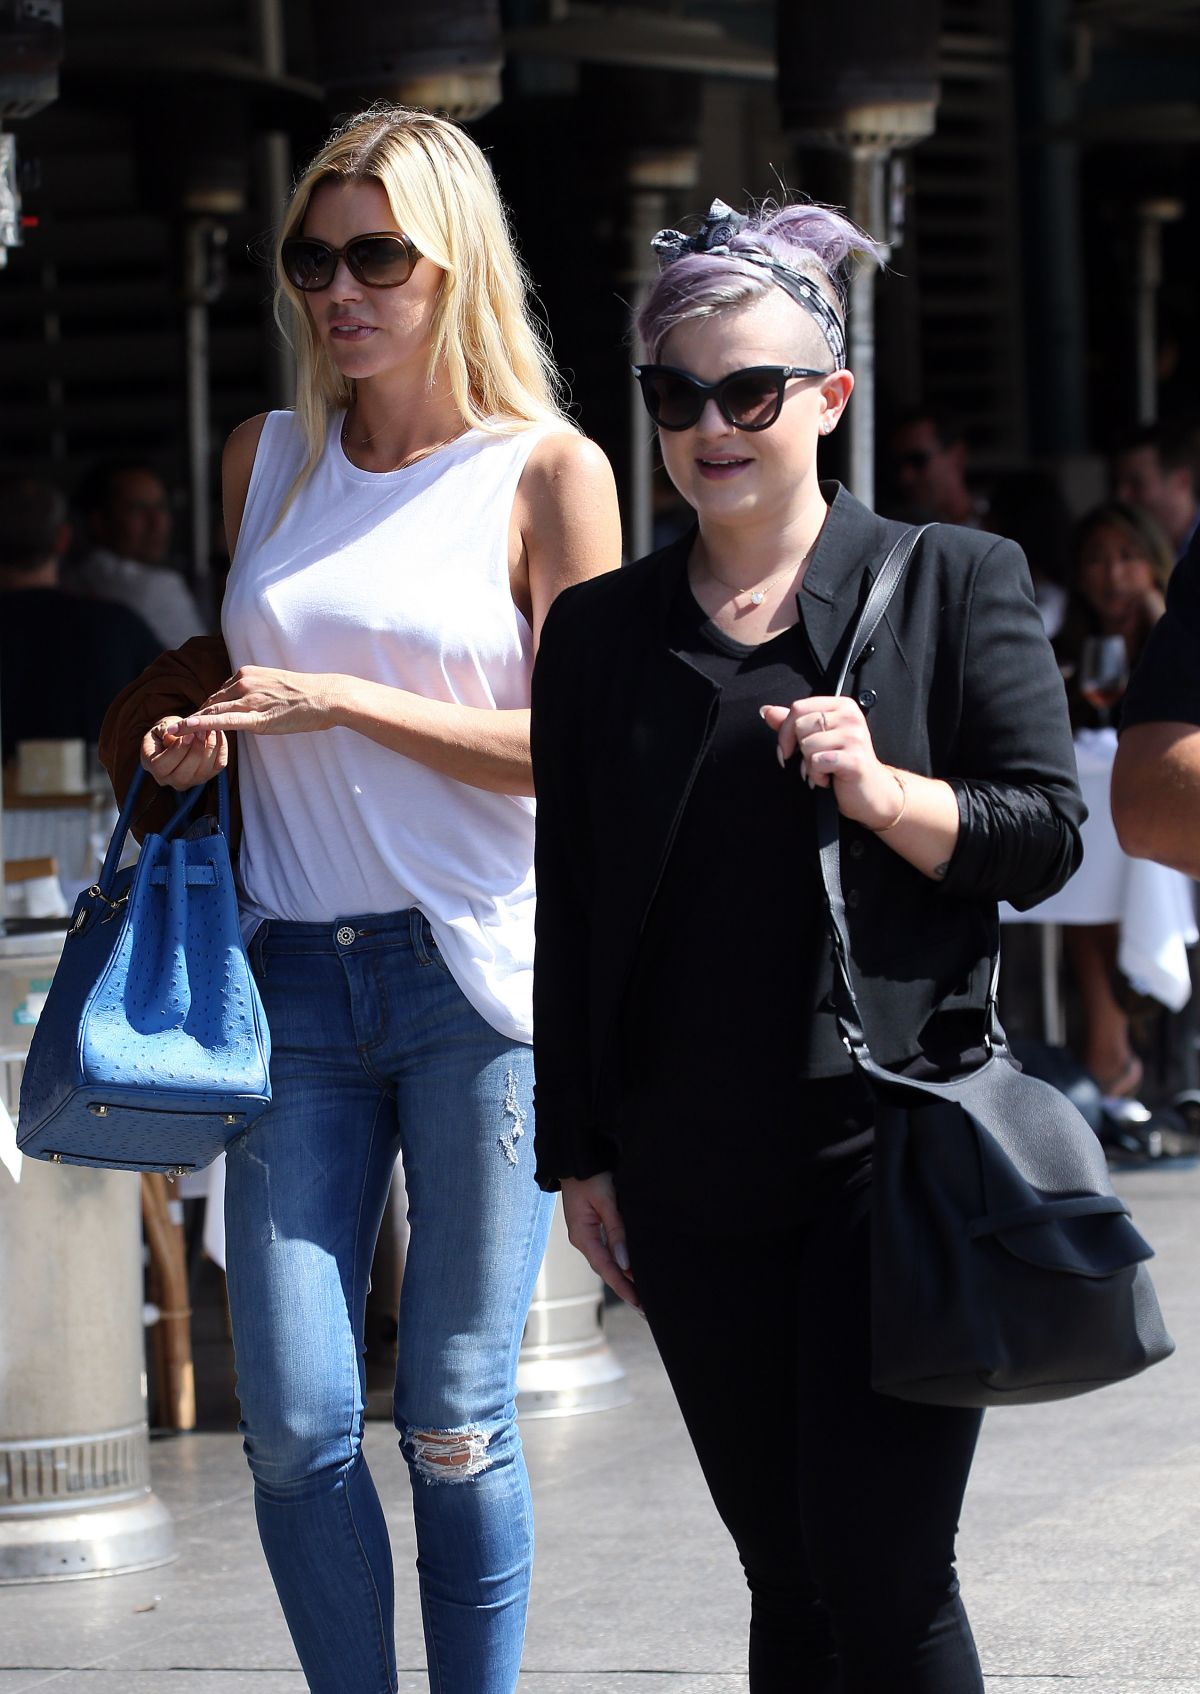 KELLY OSBOURNE and SOPHIE MONK Out for Drinks at Woolloomooloo Wharf in Sydney 01/30/2016